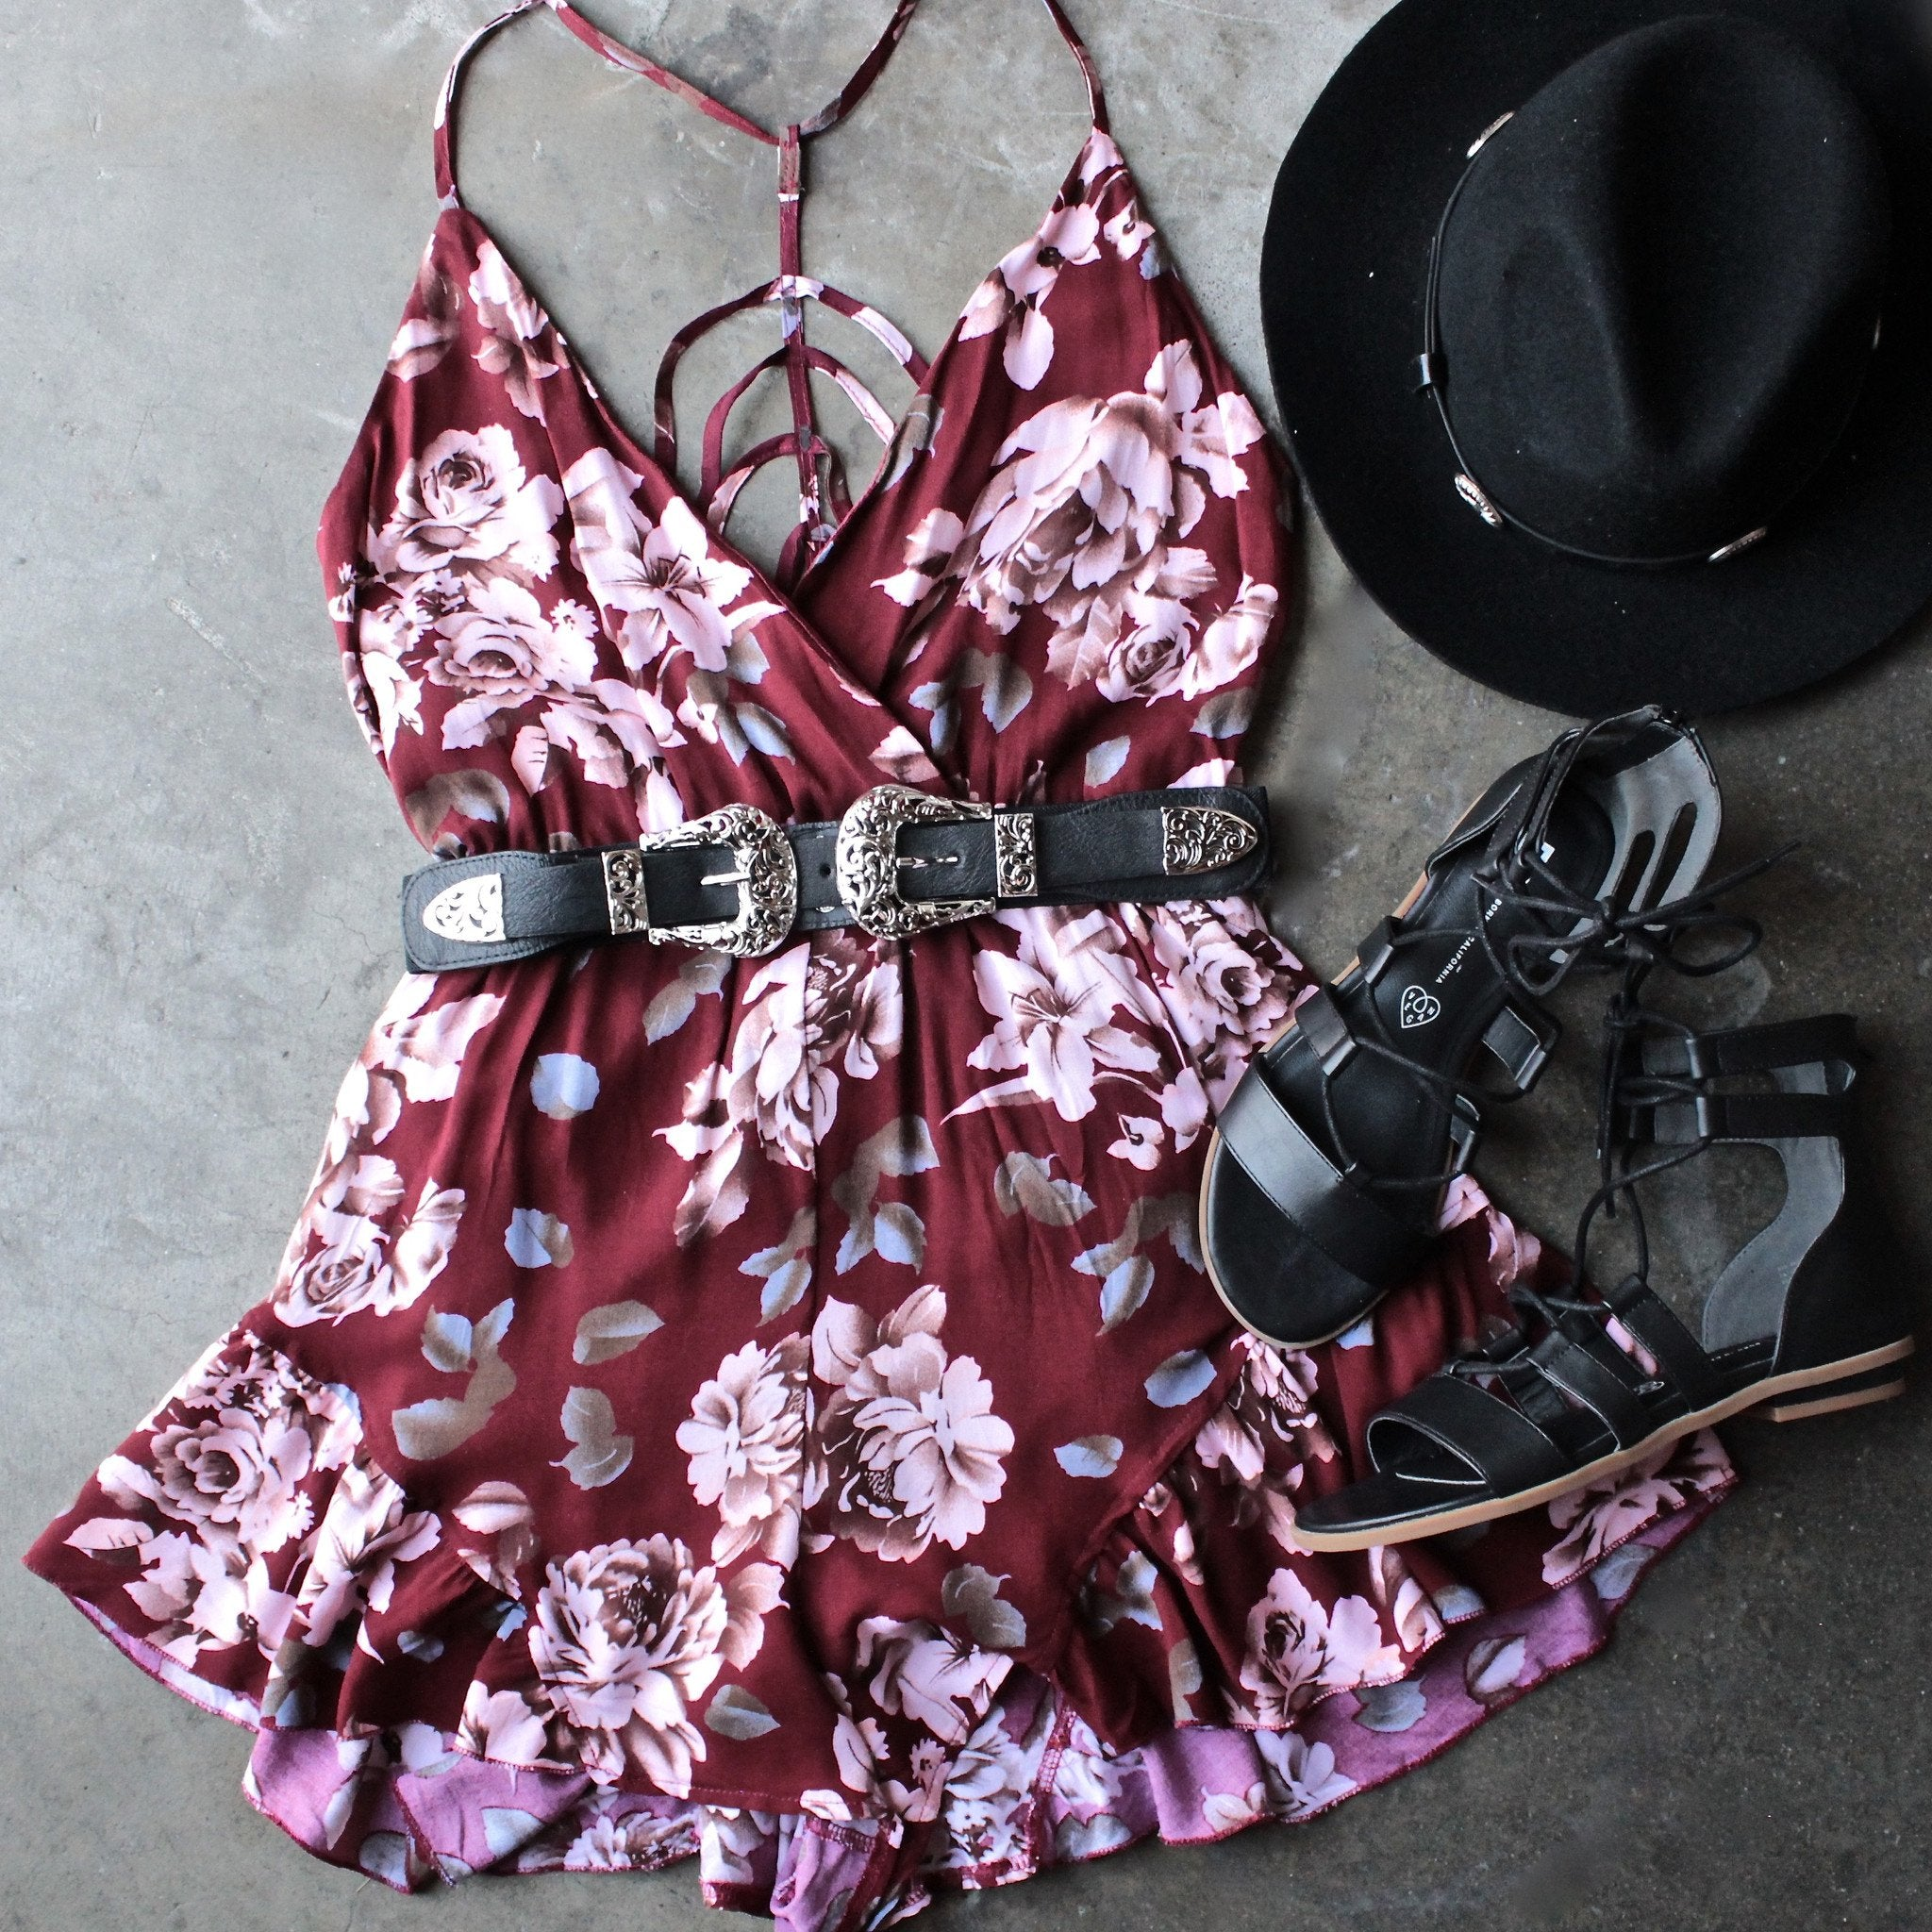 reverse - girl crush romper in burgundy floral - shophearts - 1